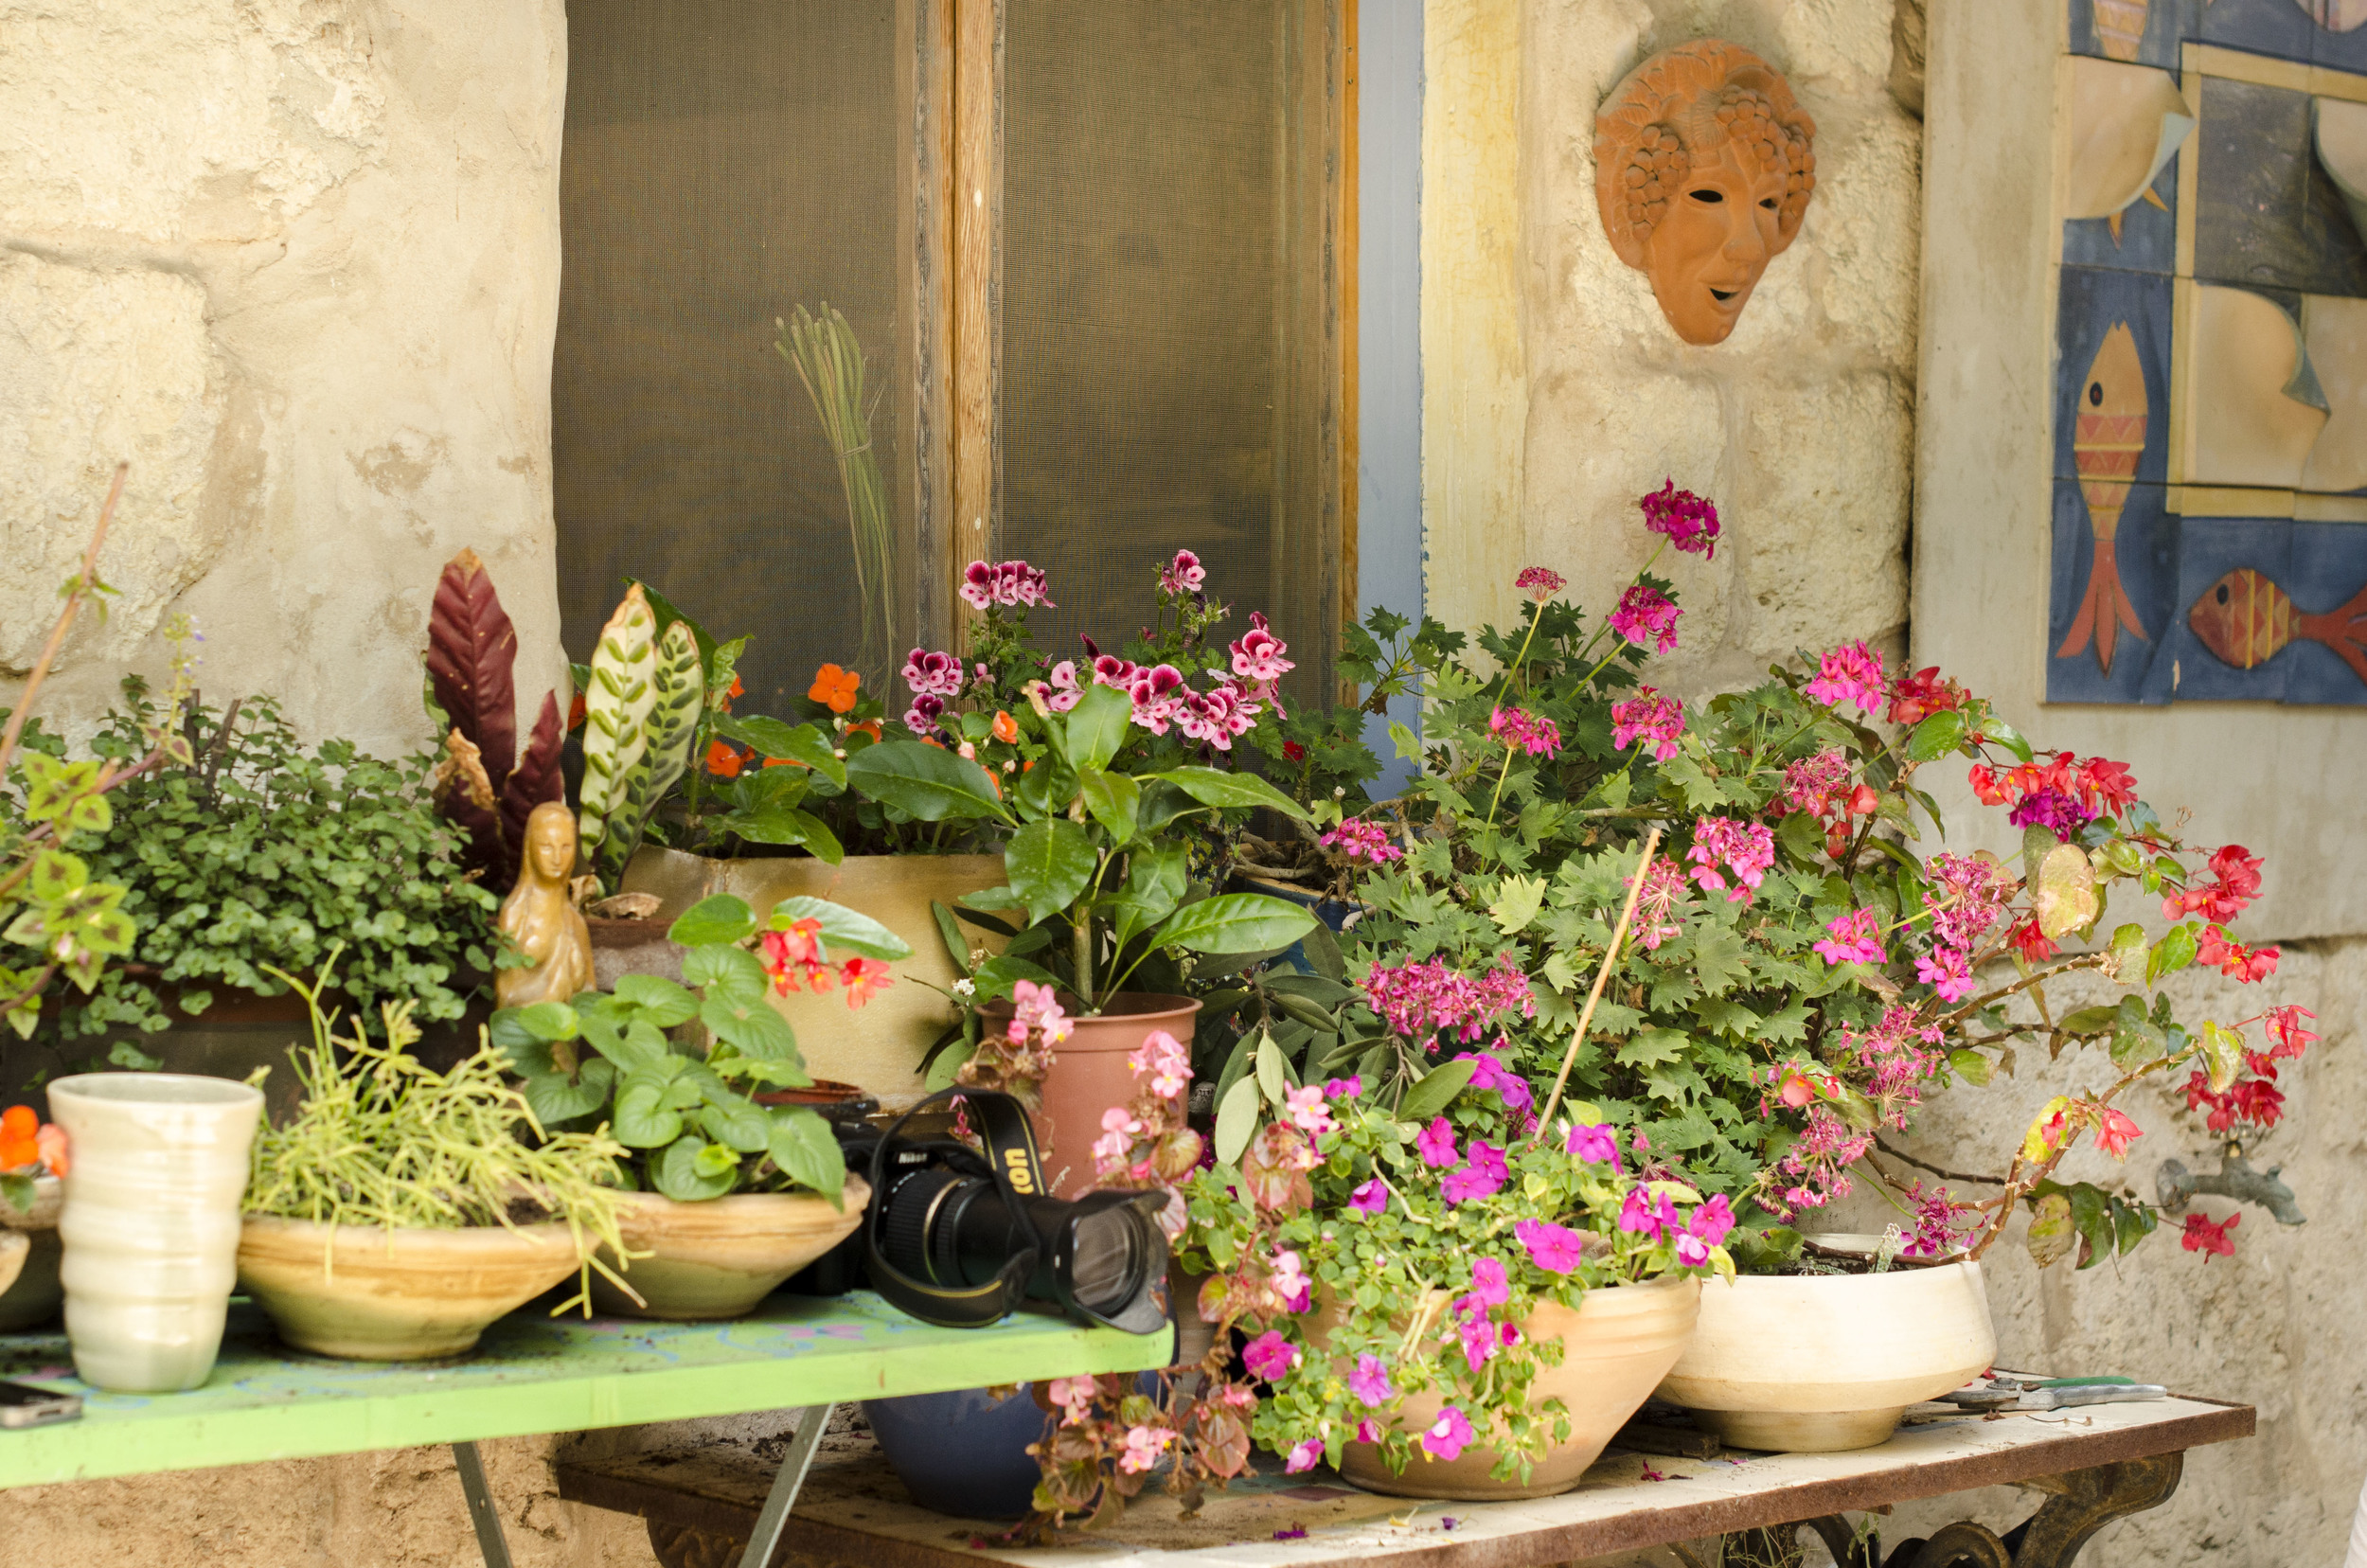 Entrance to the house - different kinds of Geranium, Red Begonia & Impatiens Walleriana.